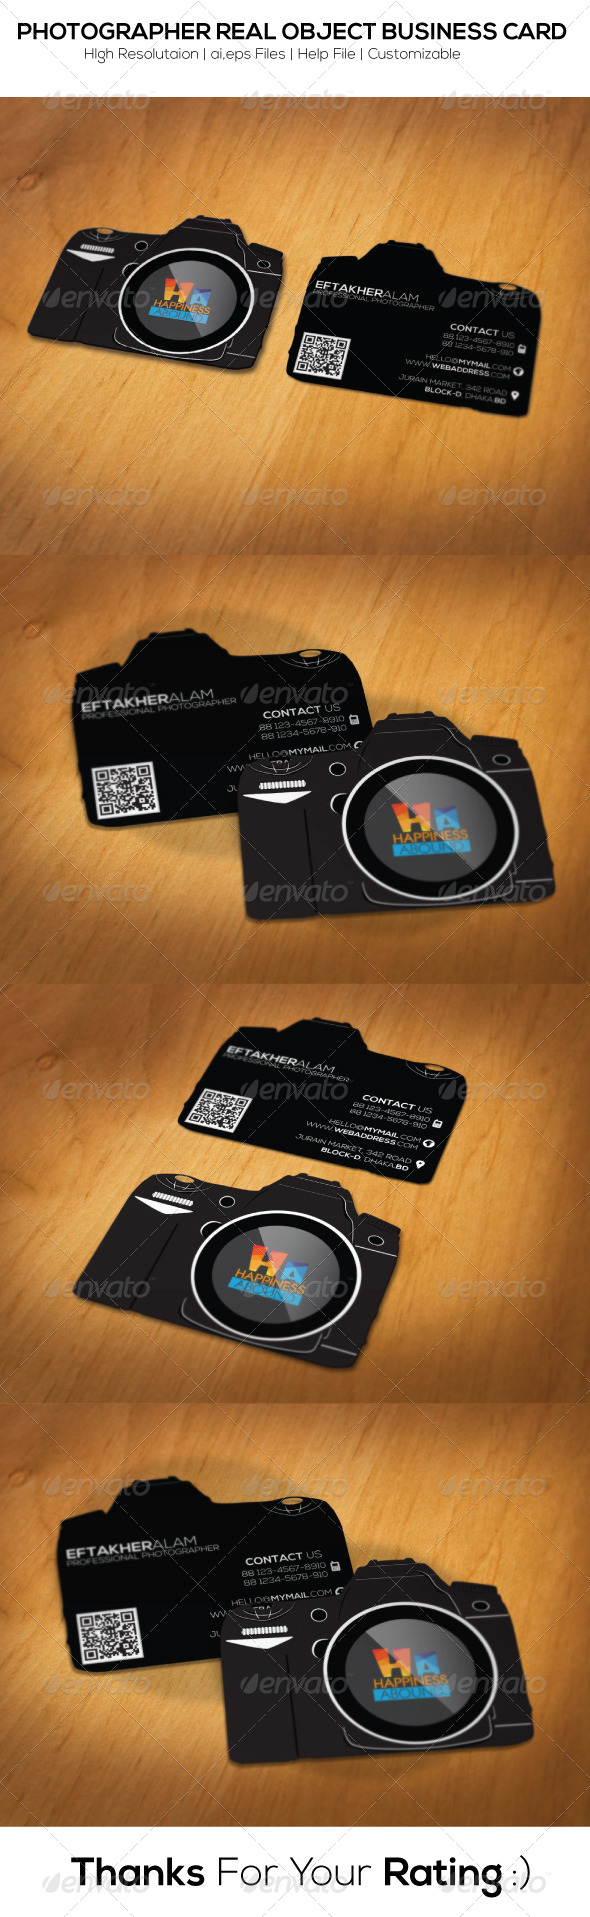 Photographer Real Object Business Card - Real Objects Business Cards